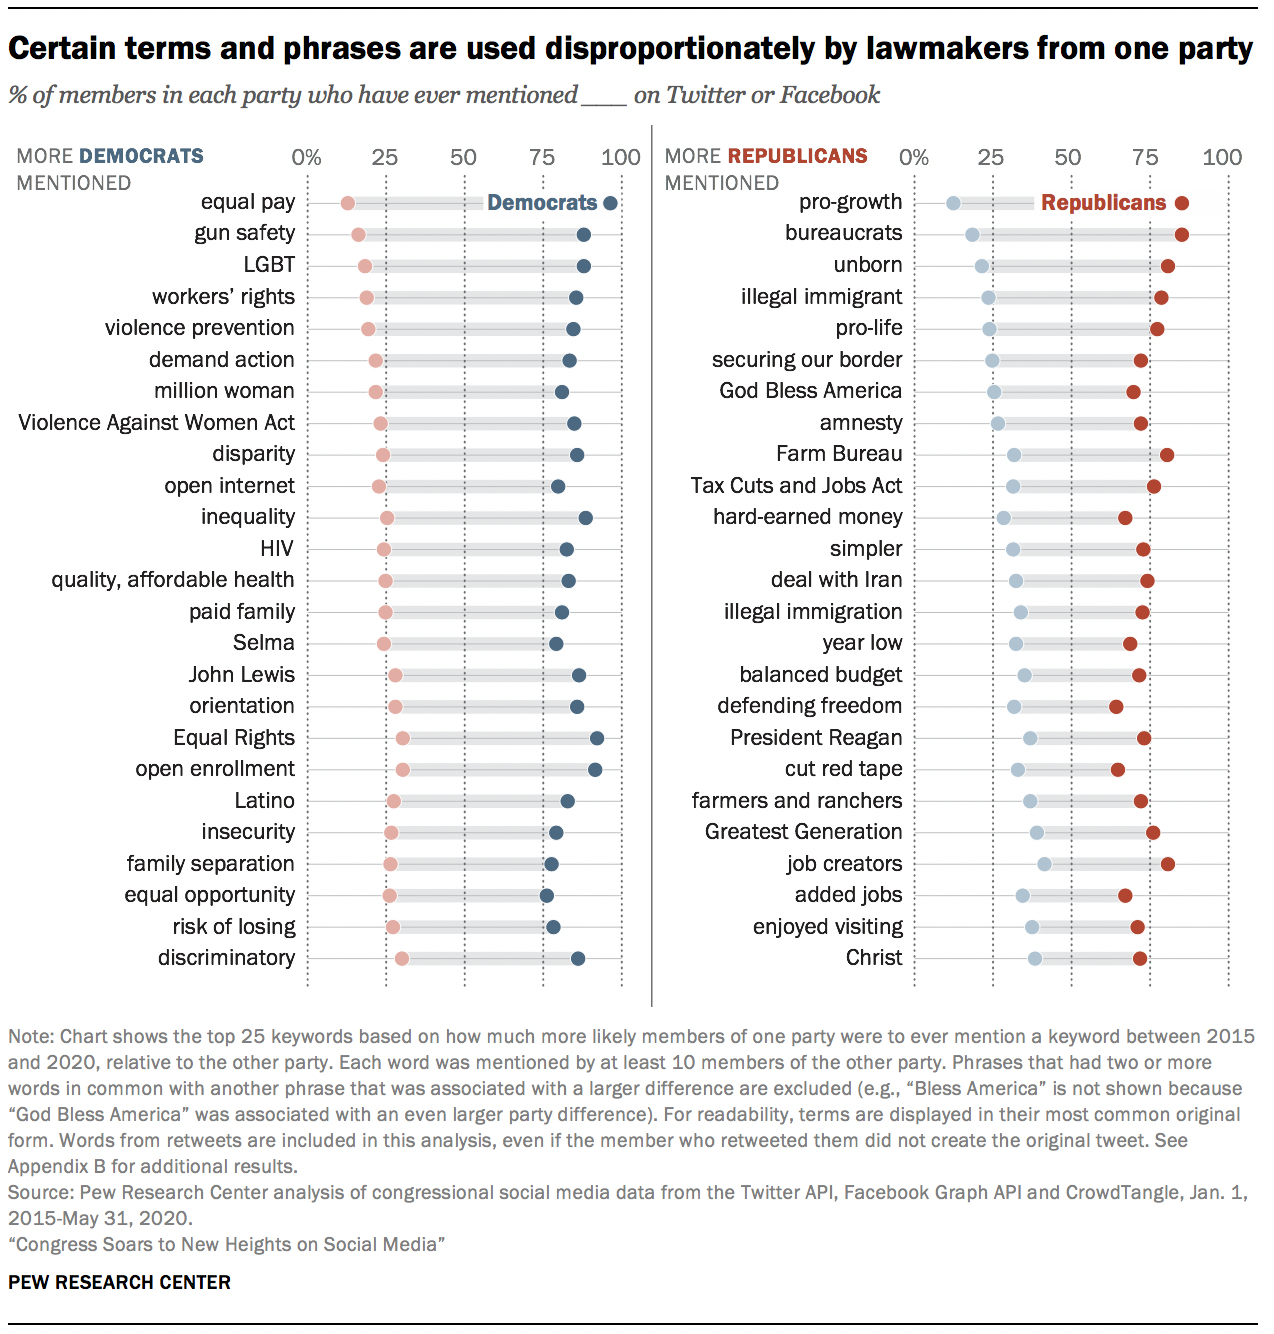 Certain terms and phrases are used disproportionately by lawmakers from one party, reads this chart from the Pew Research Center